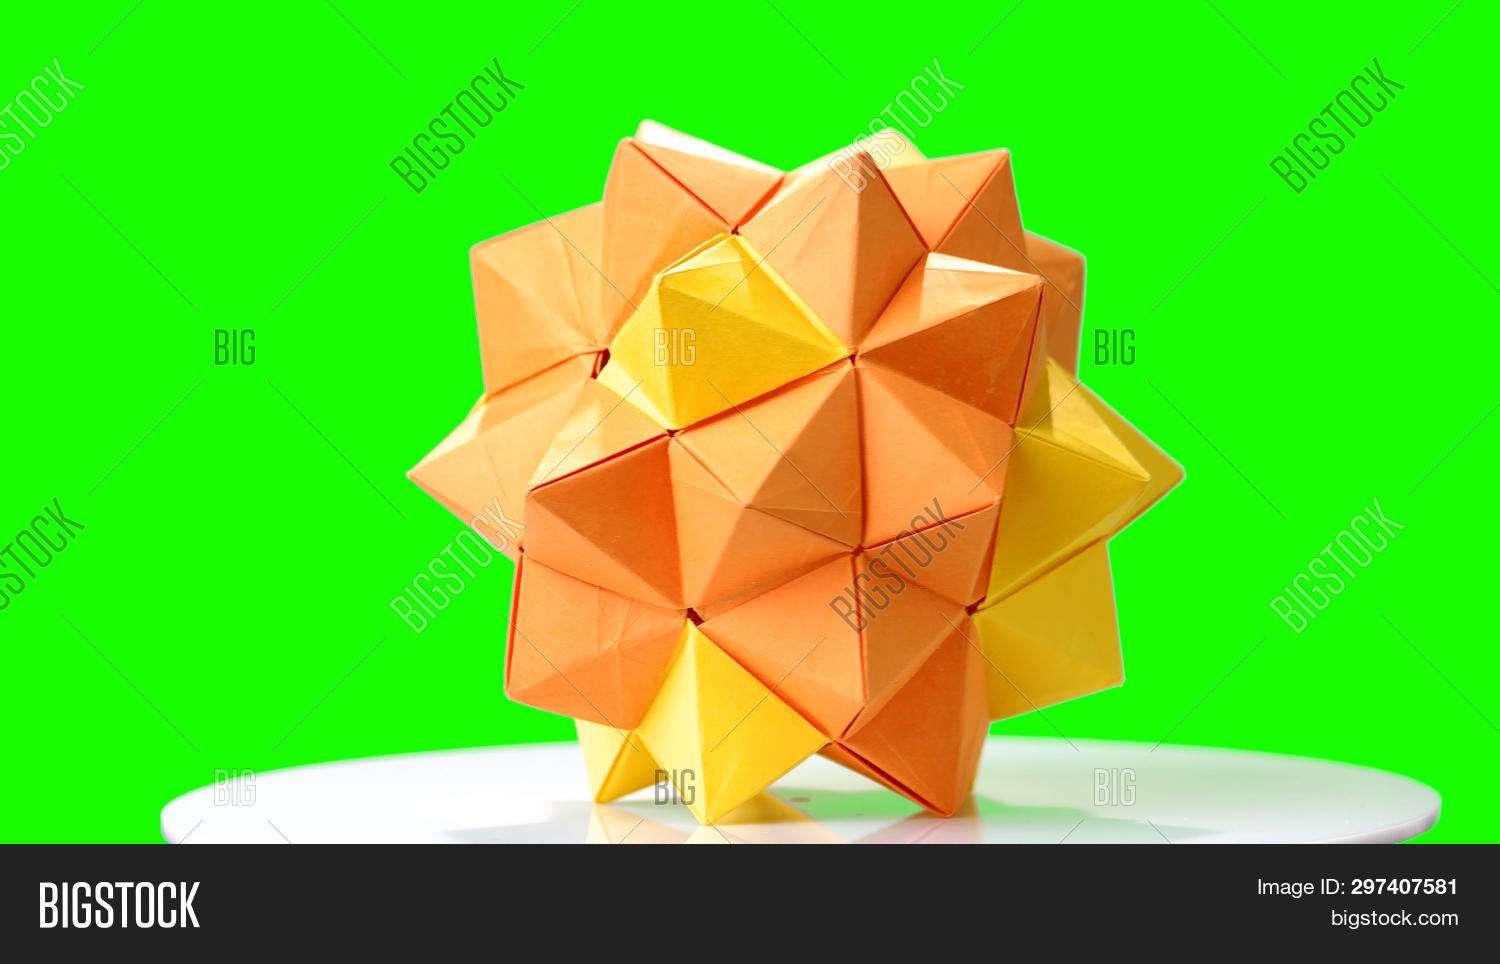 Origami Omega Star for Decoration | Online Store | 964x1500